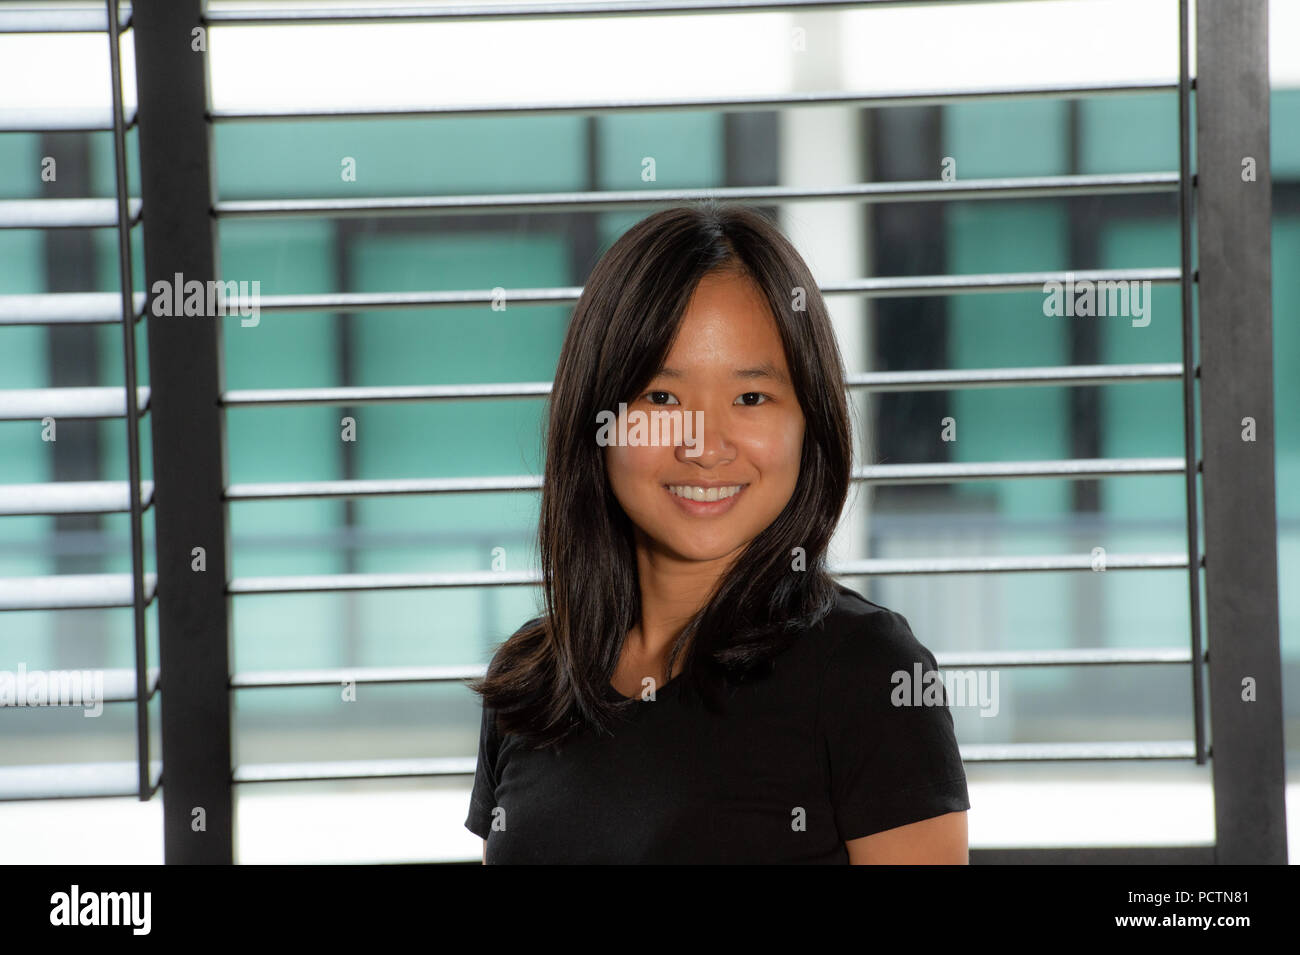 2c576d3a04 Beauty portrait of asian woman in a black shirt and white jean shorts -  Stock Image